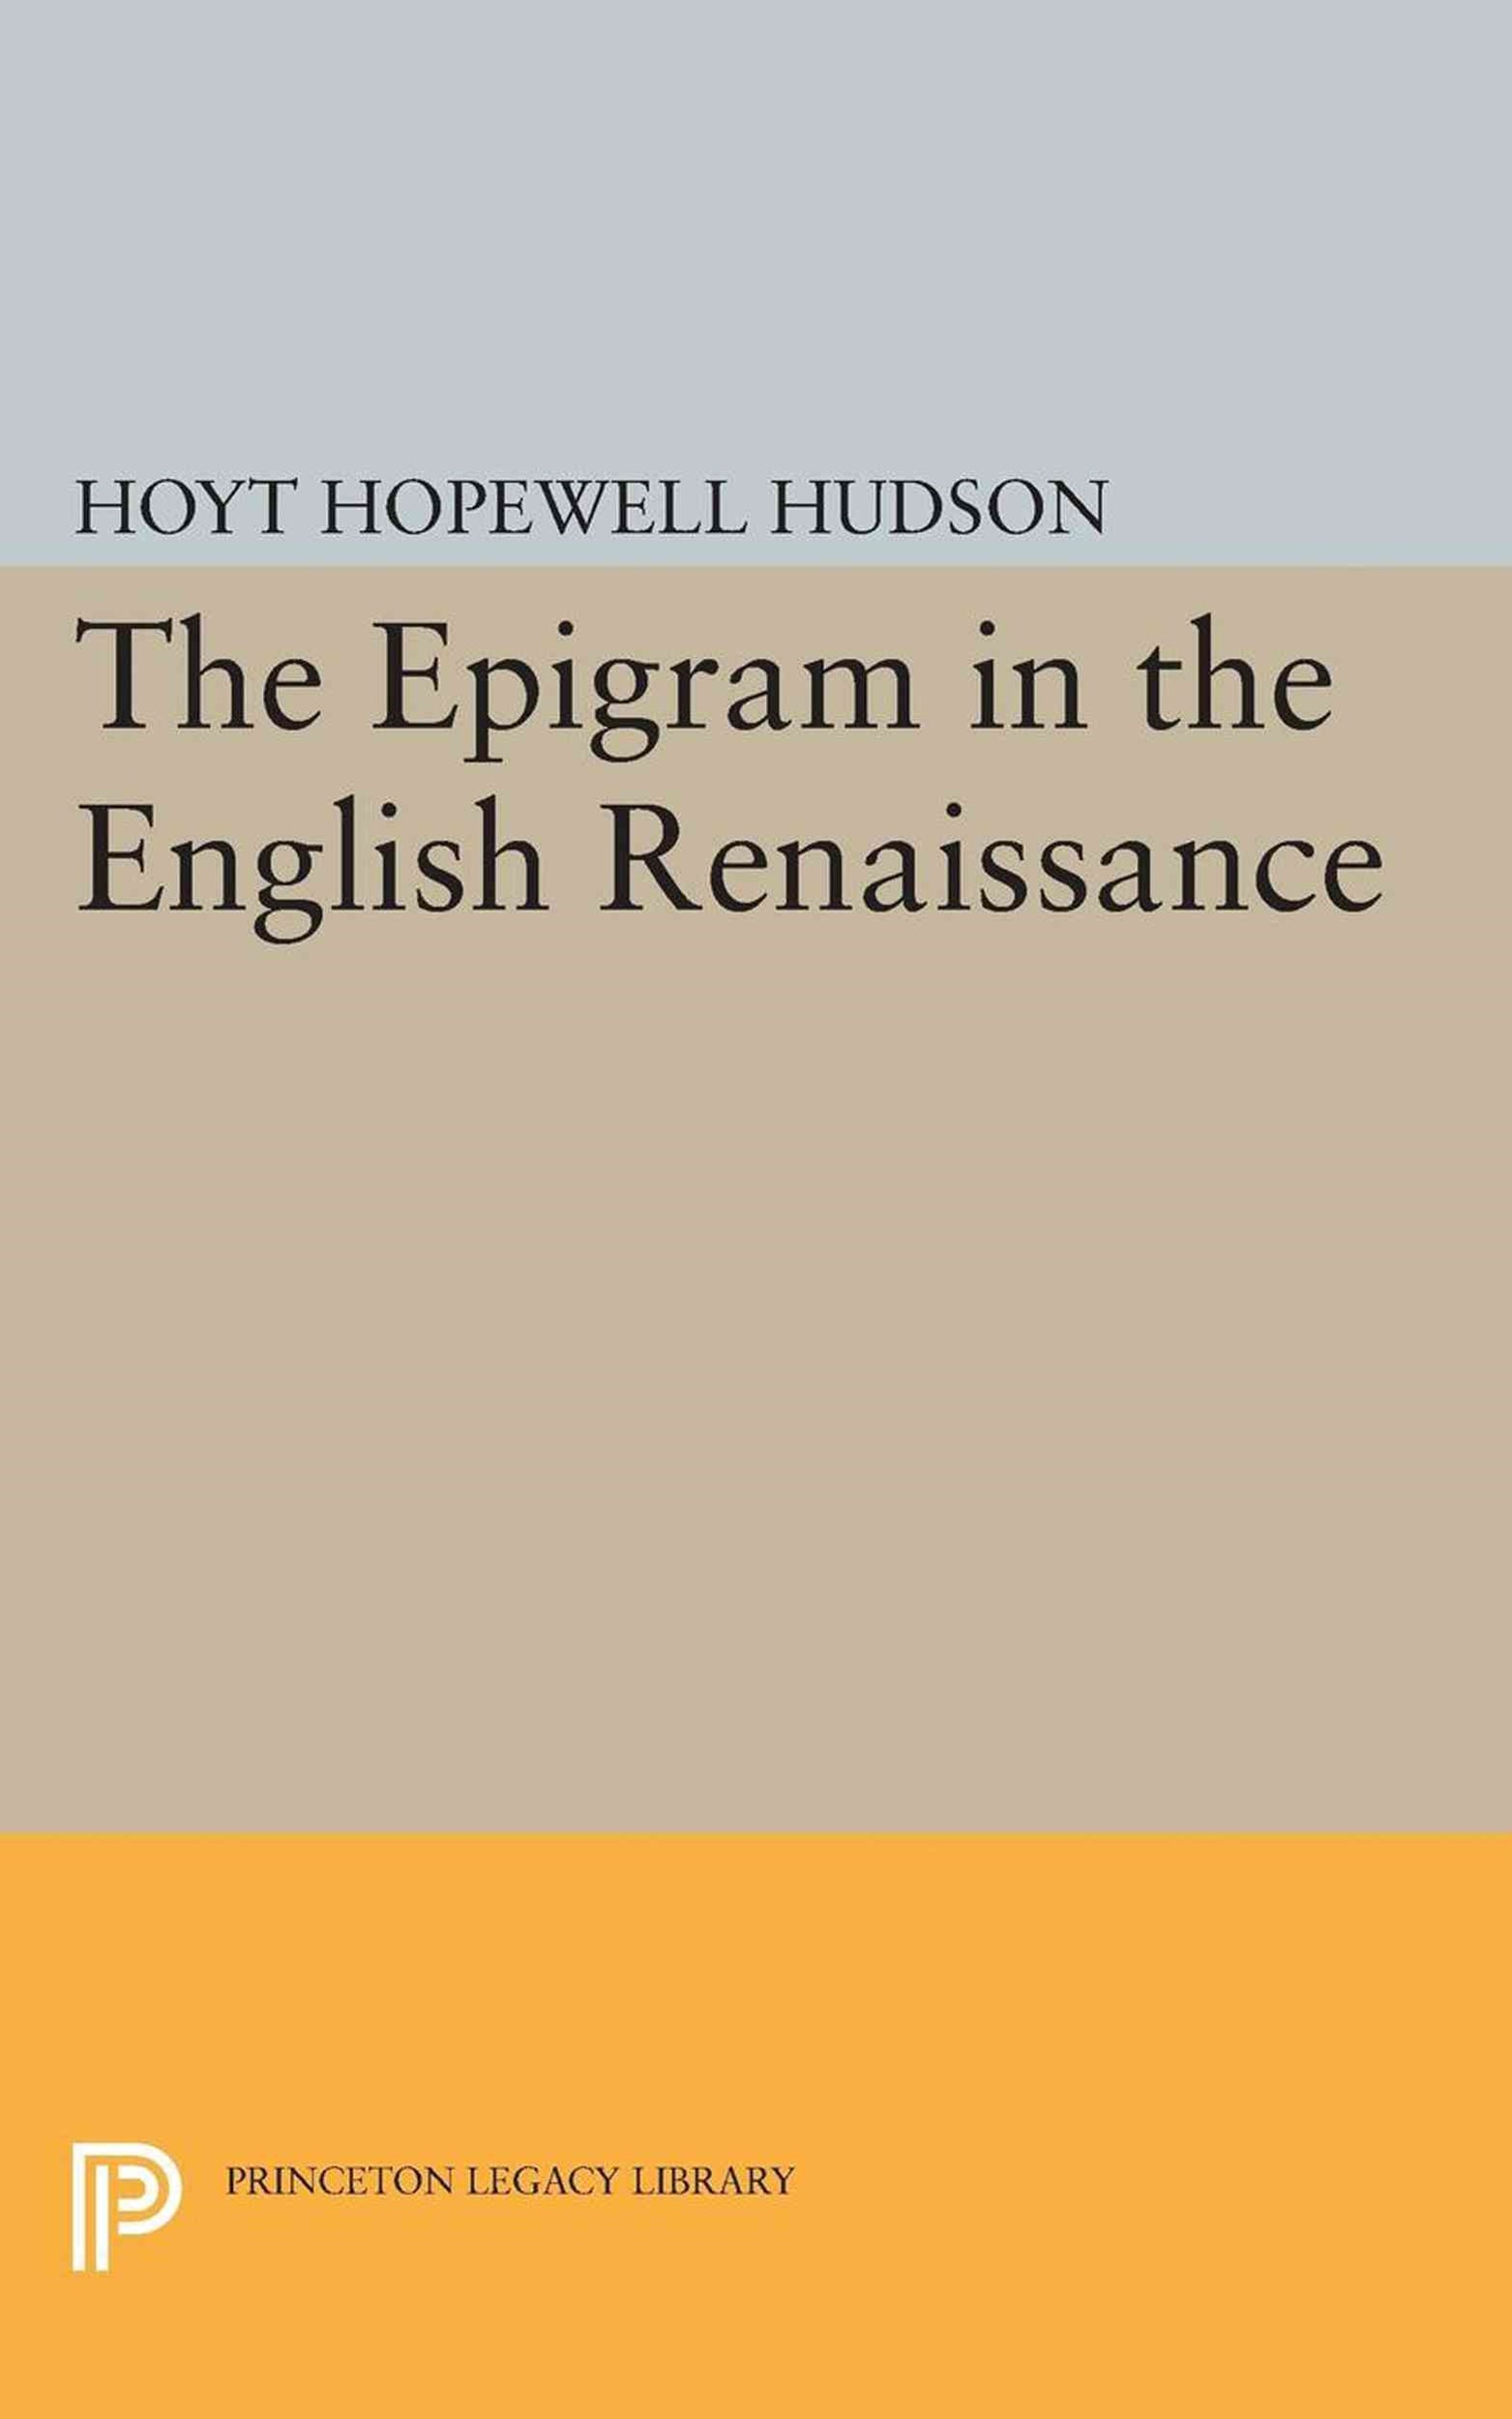 Epigram in the English Renaissance